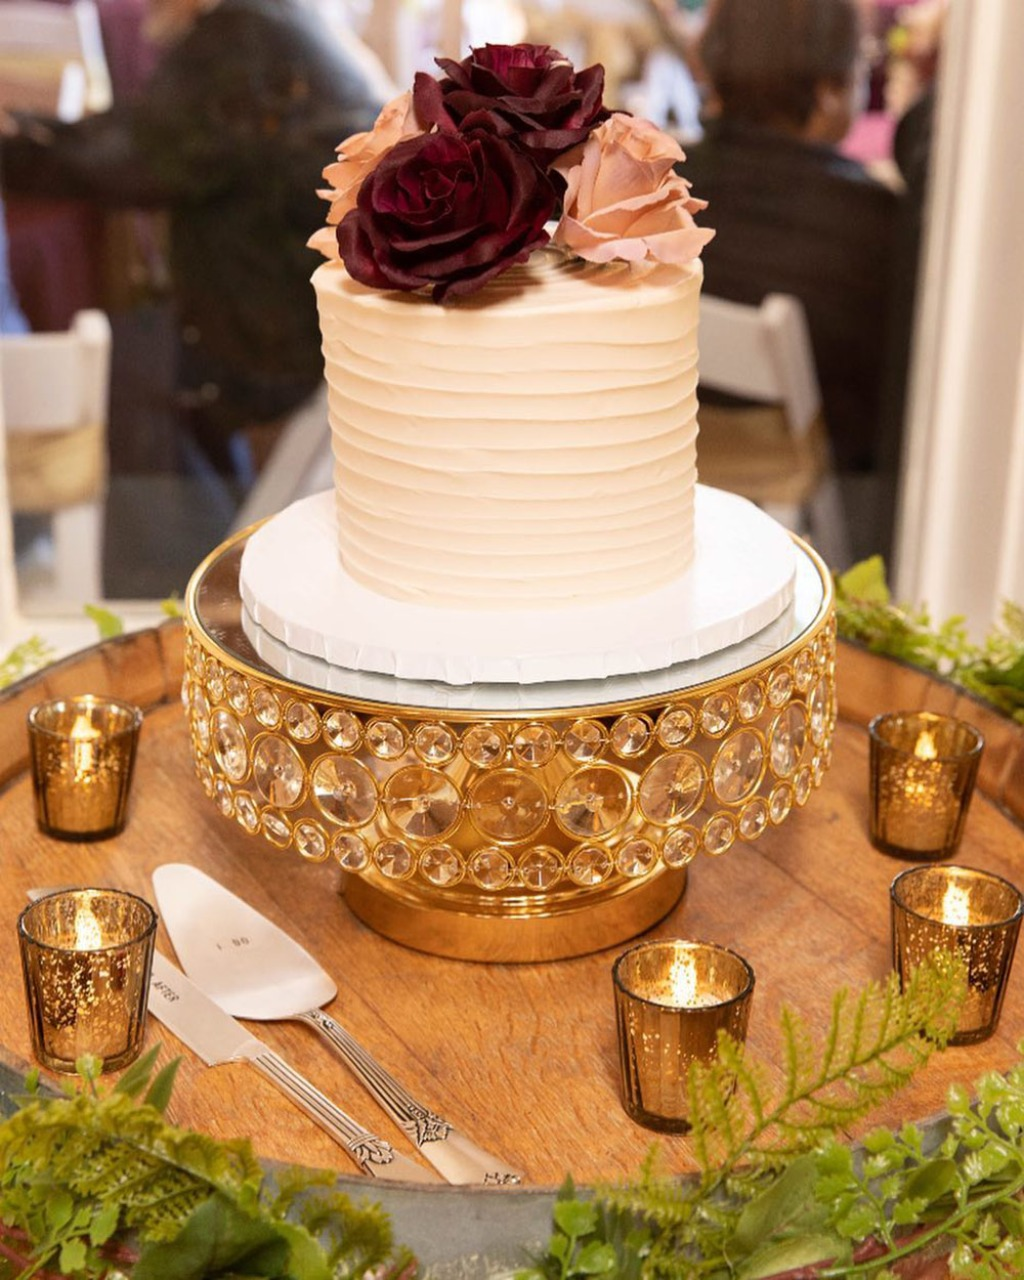 Tiffany Burke Events ... Wedding cake stands that shine bright like a diamond! Cake Stand created by Opulent Treasures. Wedding Cake